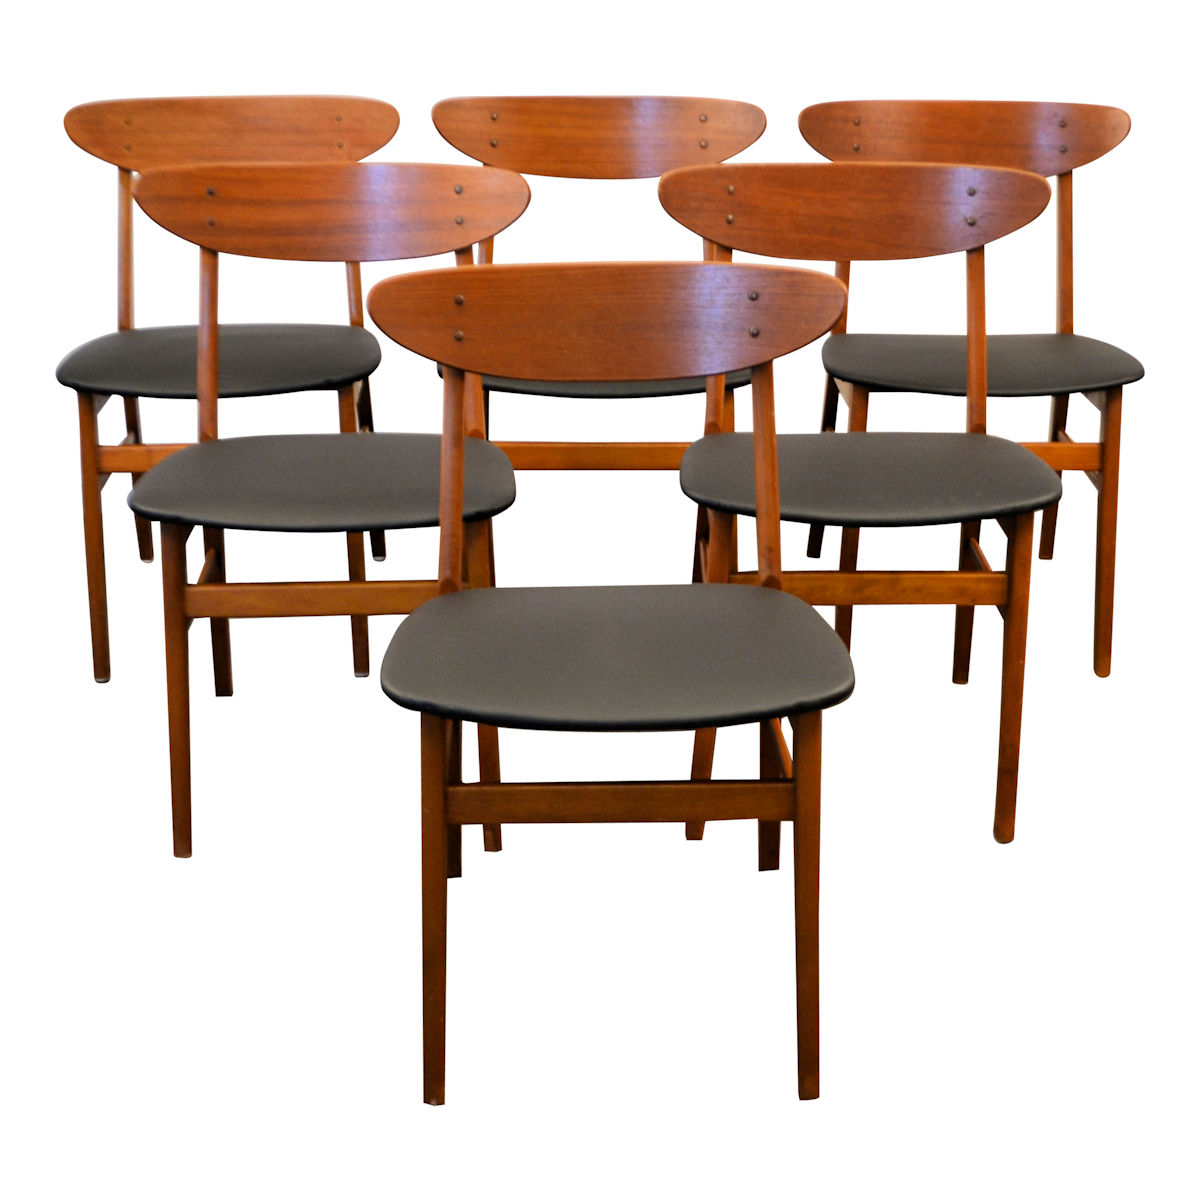 Prime Vintage Teak Knud Faerch Dining Chairs Vintage Vibes Squirreltailoven Fun Painted Chair Ideas Images Squirreltailovenorg